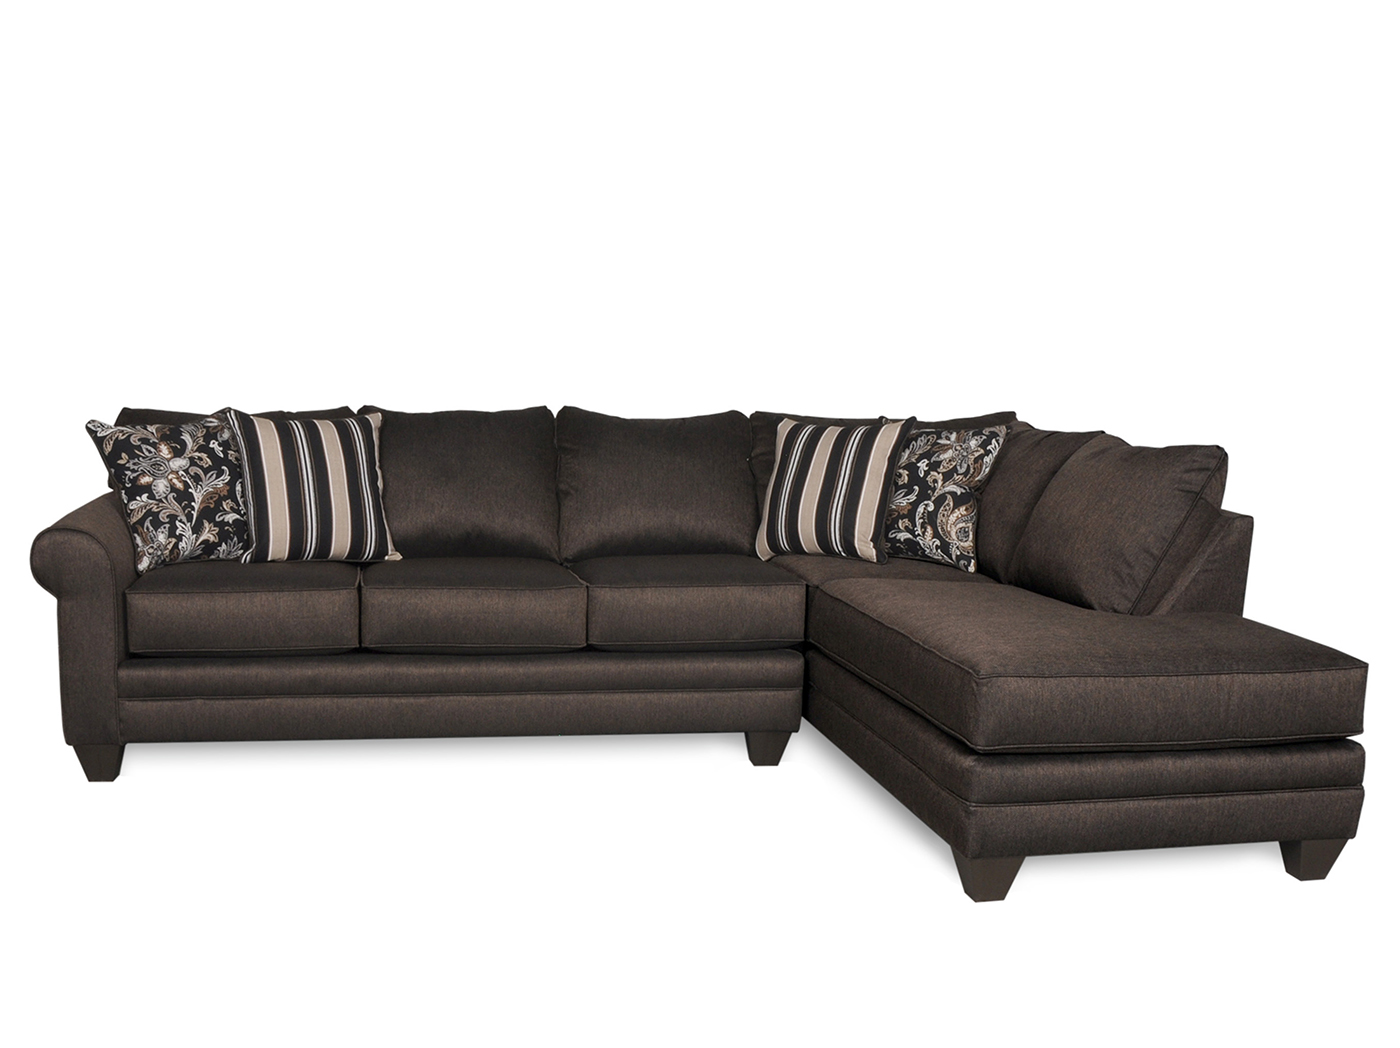 Arabica 2-pc. Sectional